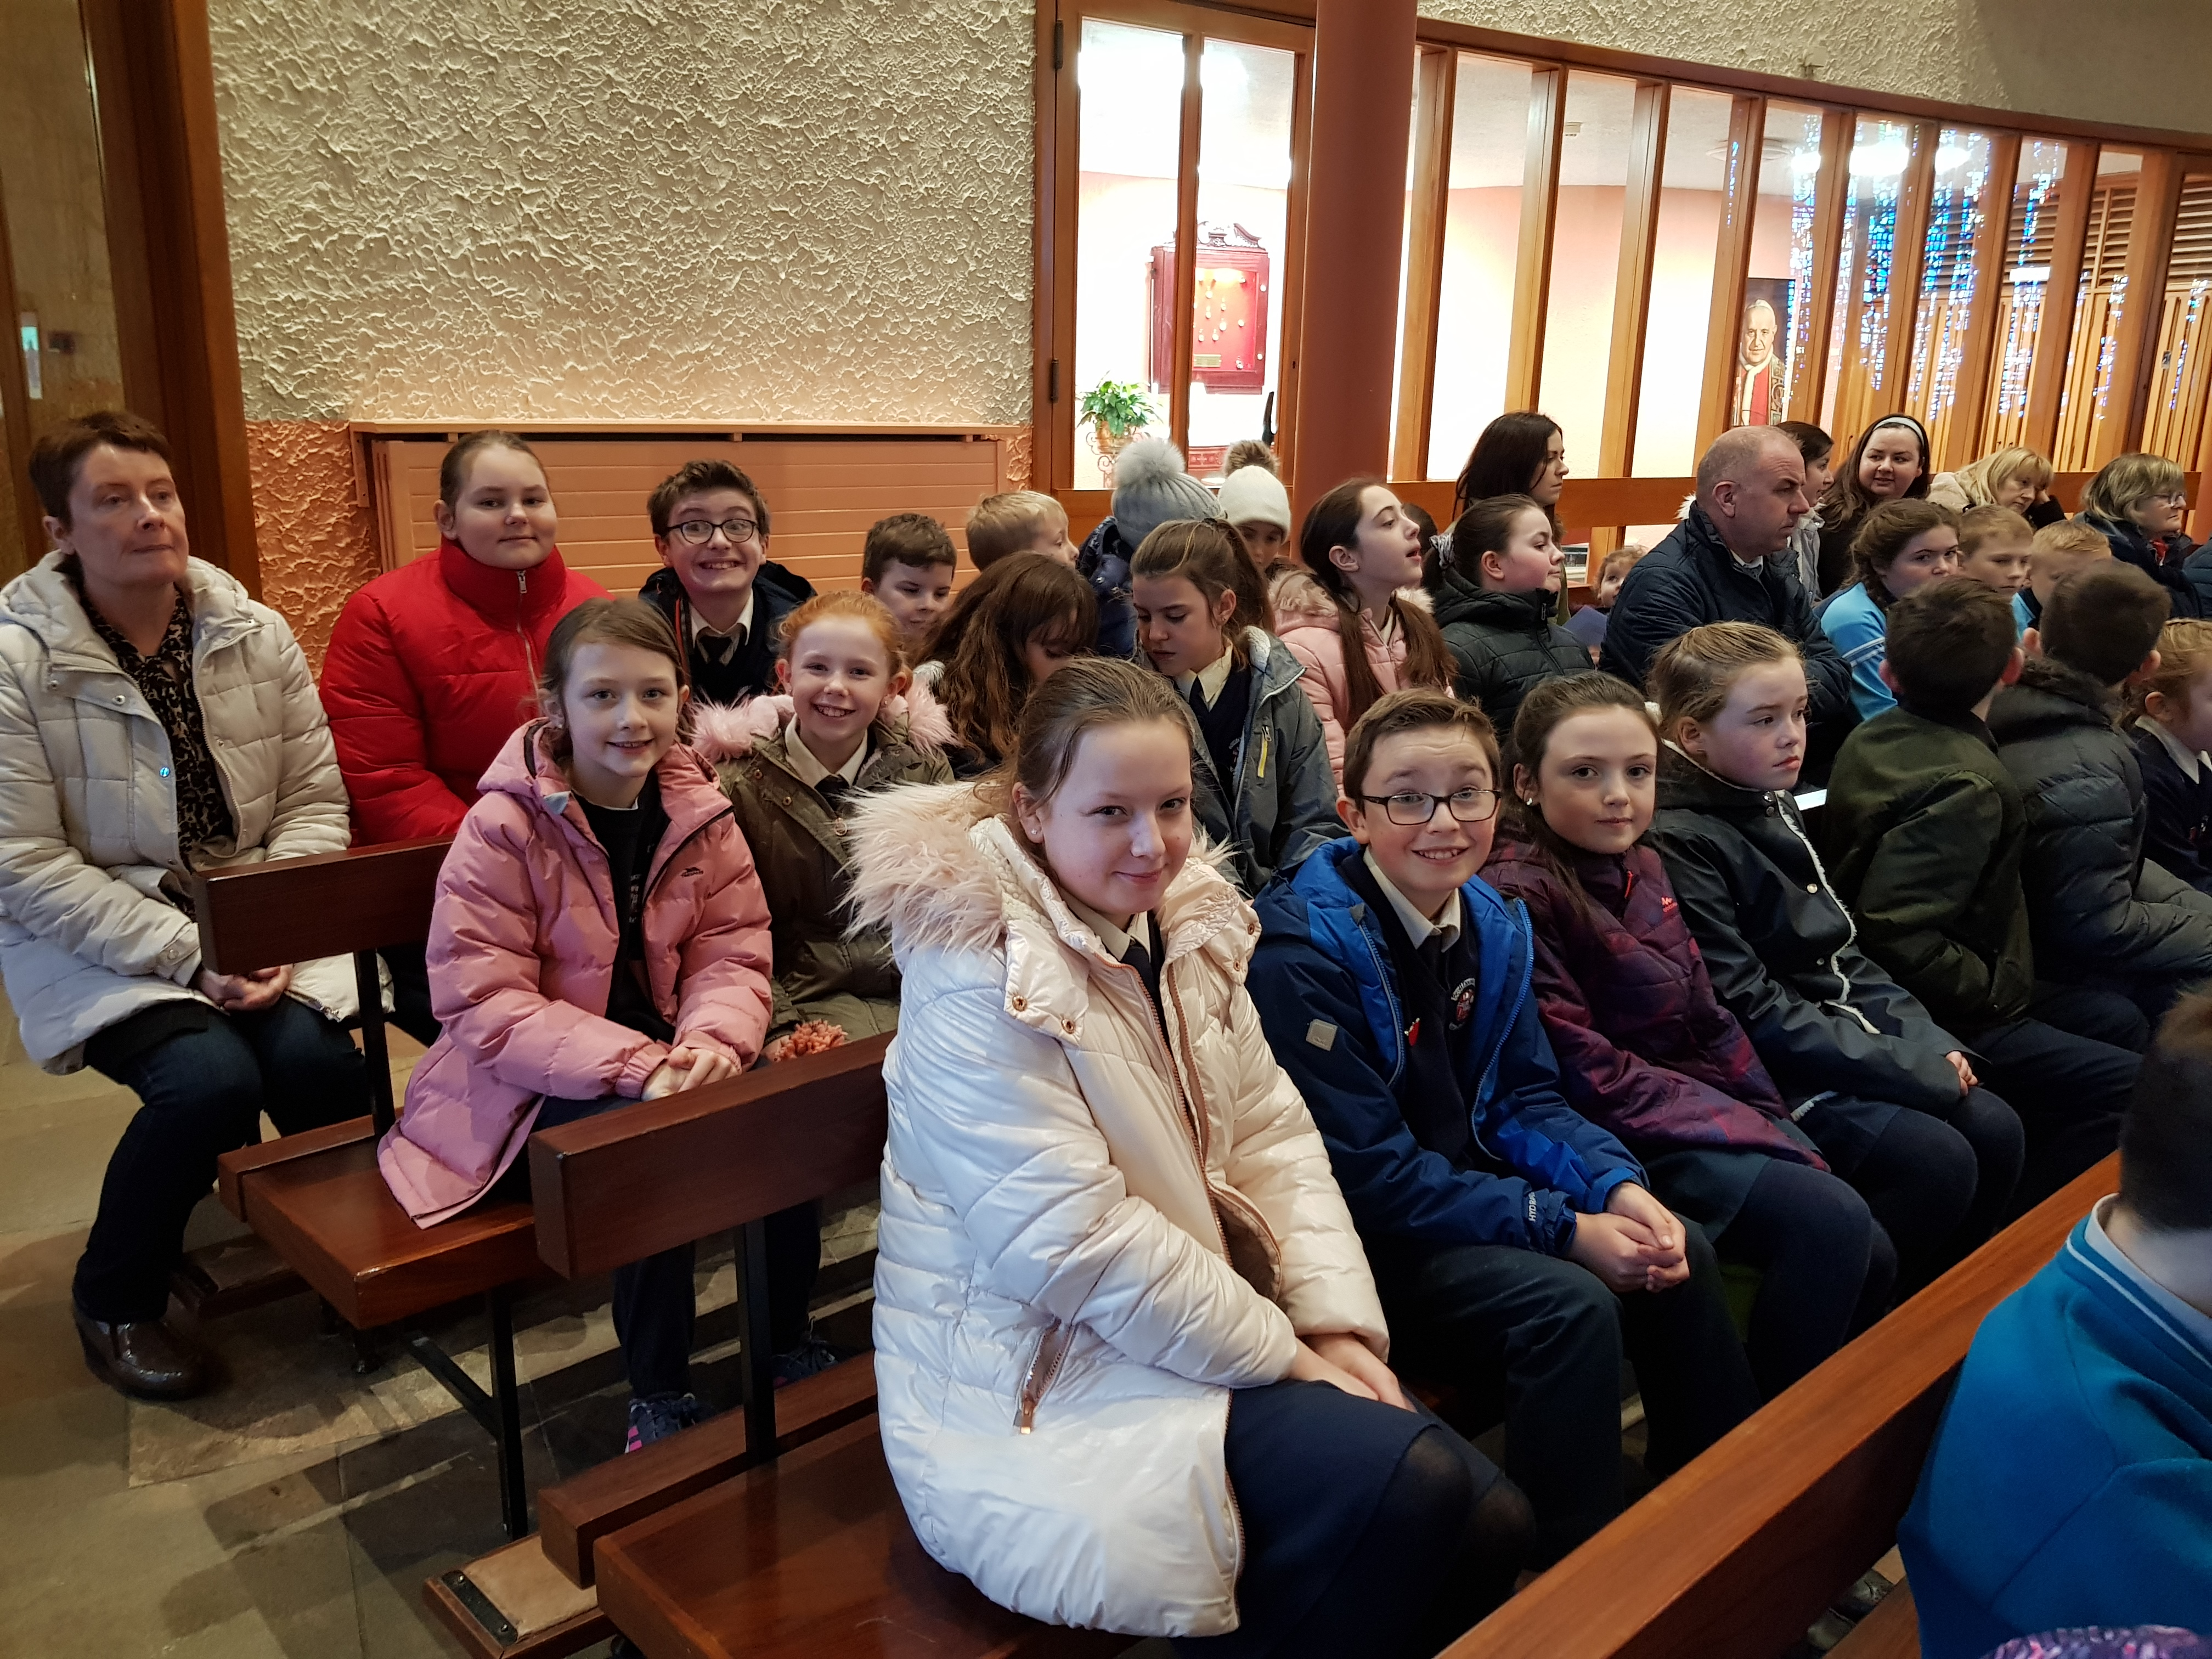 A visit to the Redeemer Church